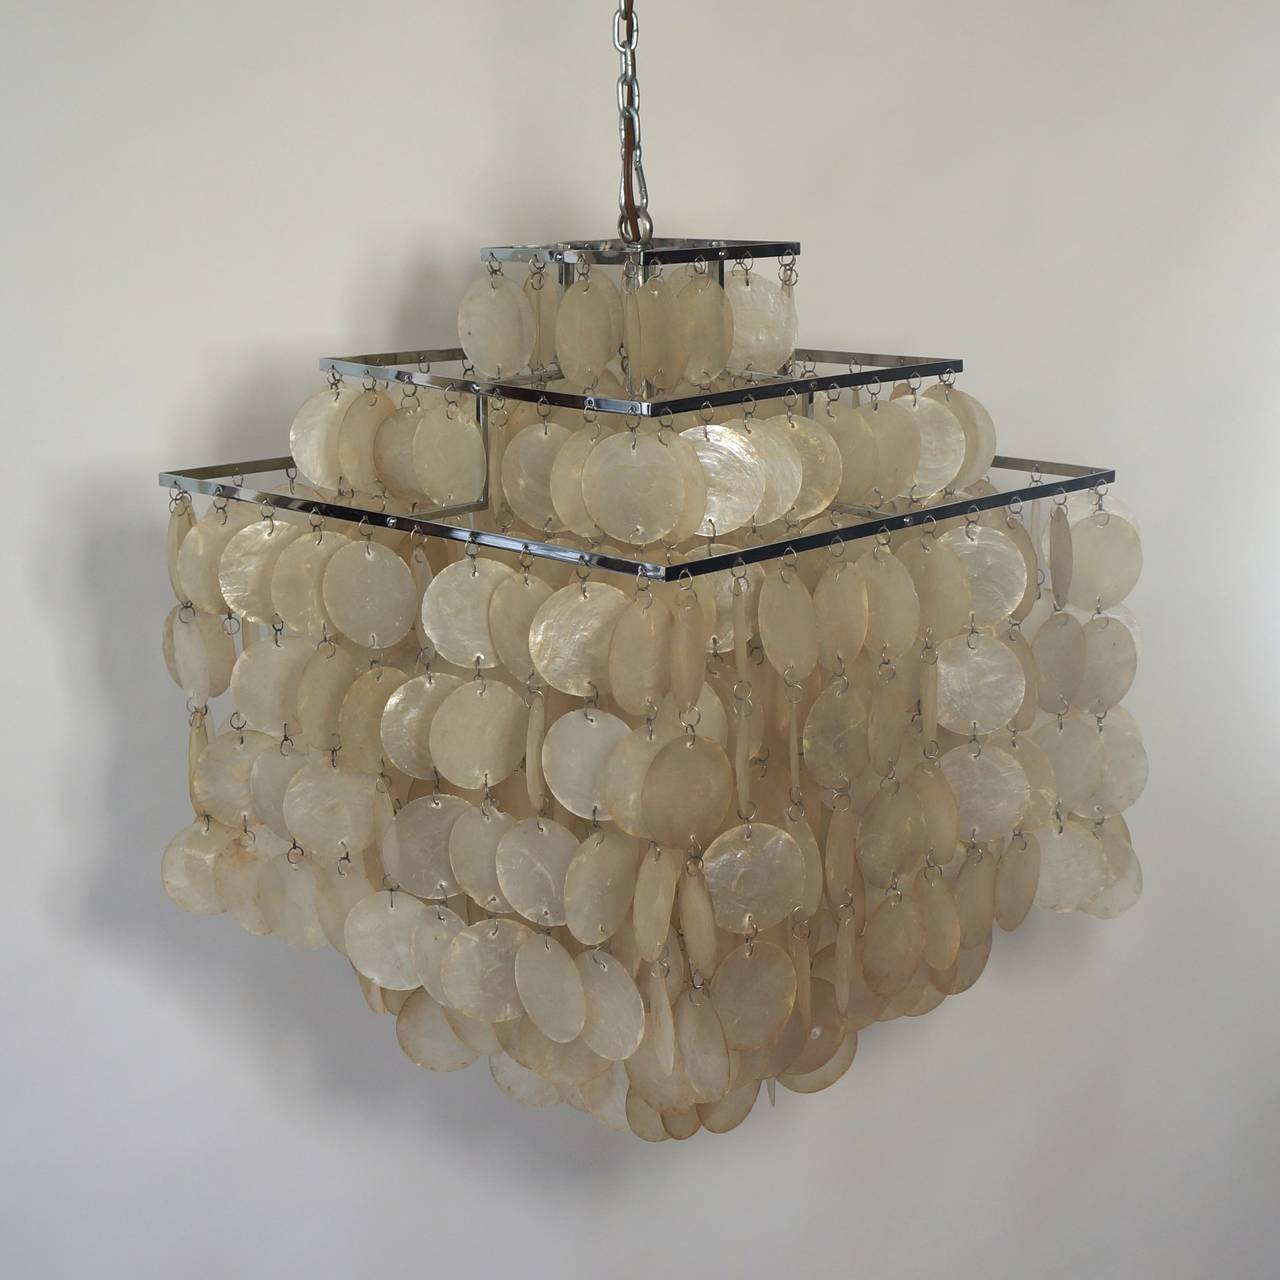 capiz shell chandelier by verner panton 10 - Capiz Shell Chandelier